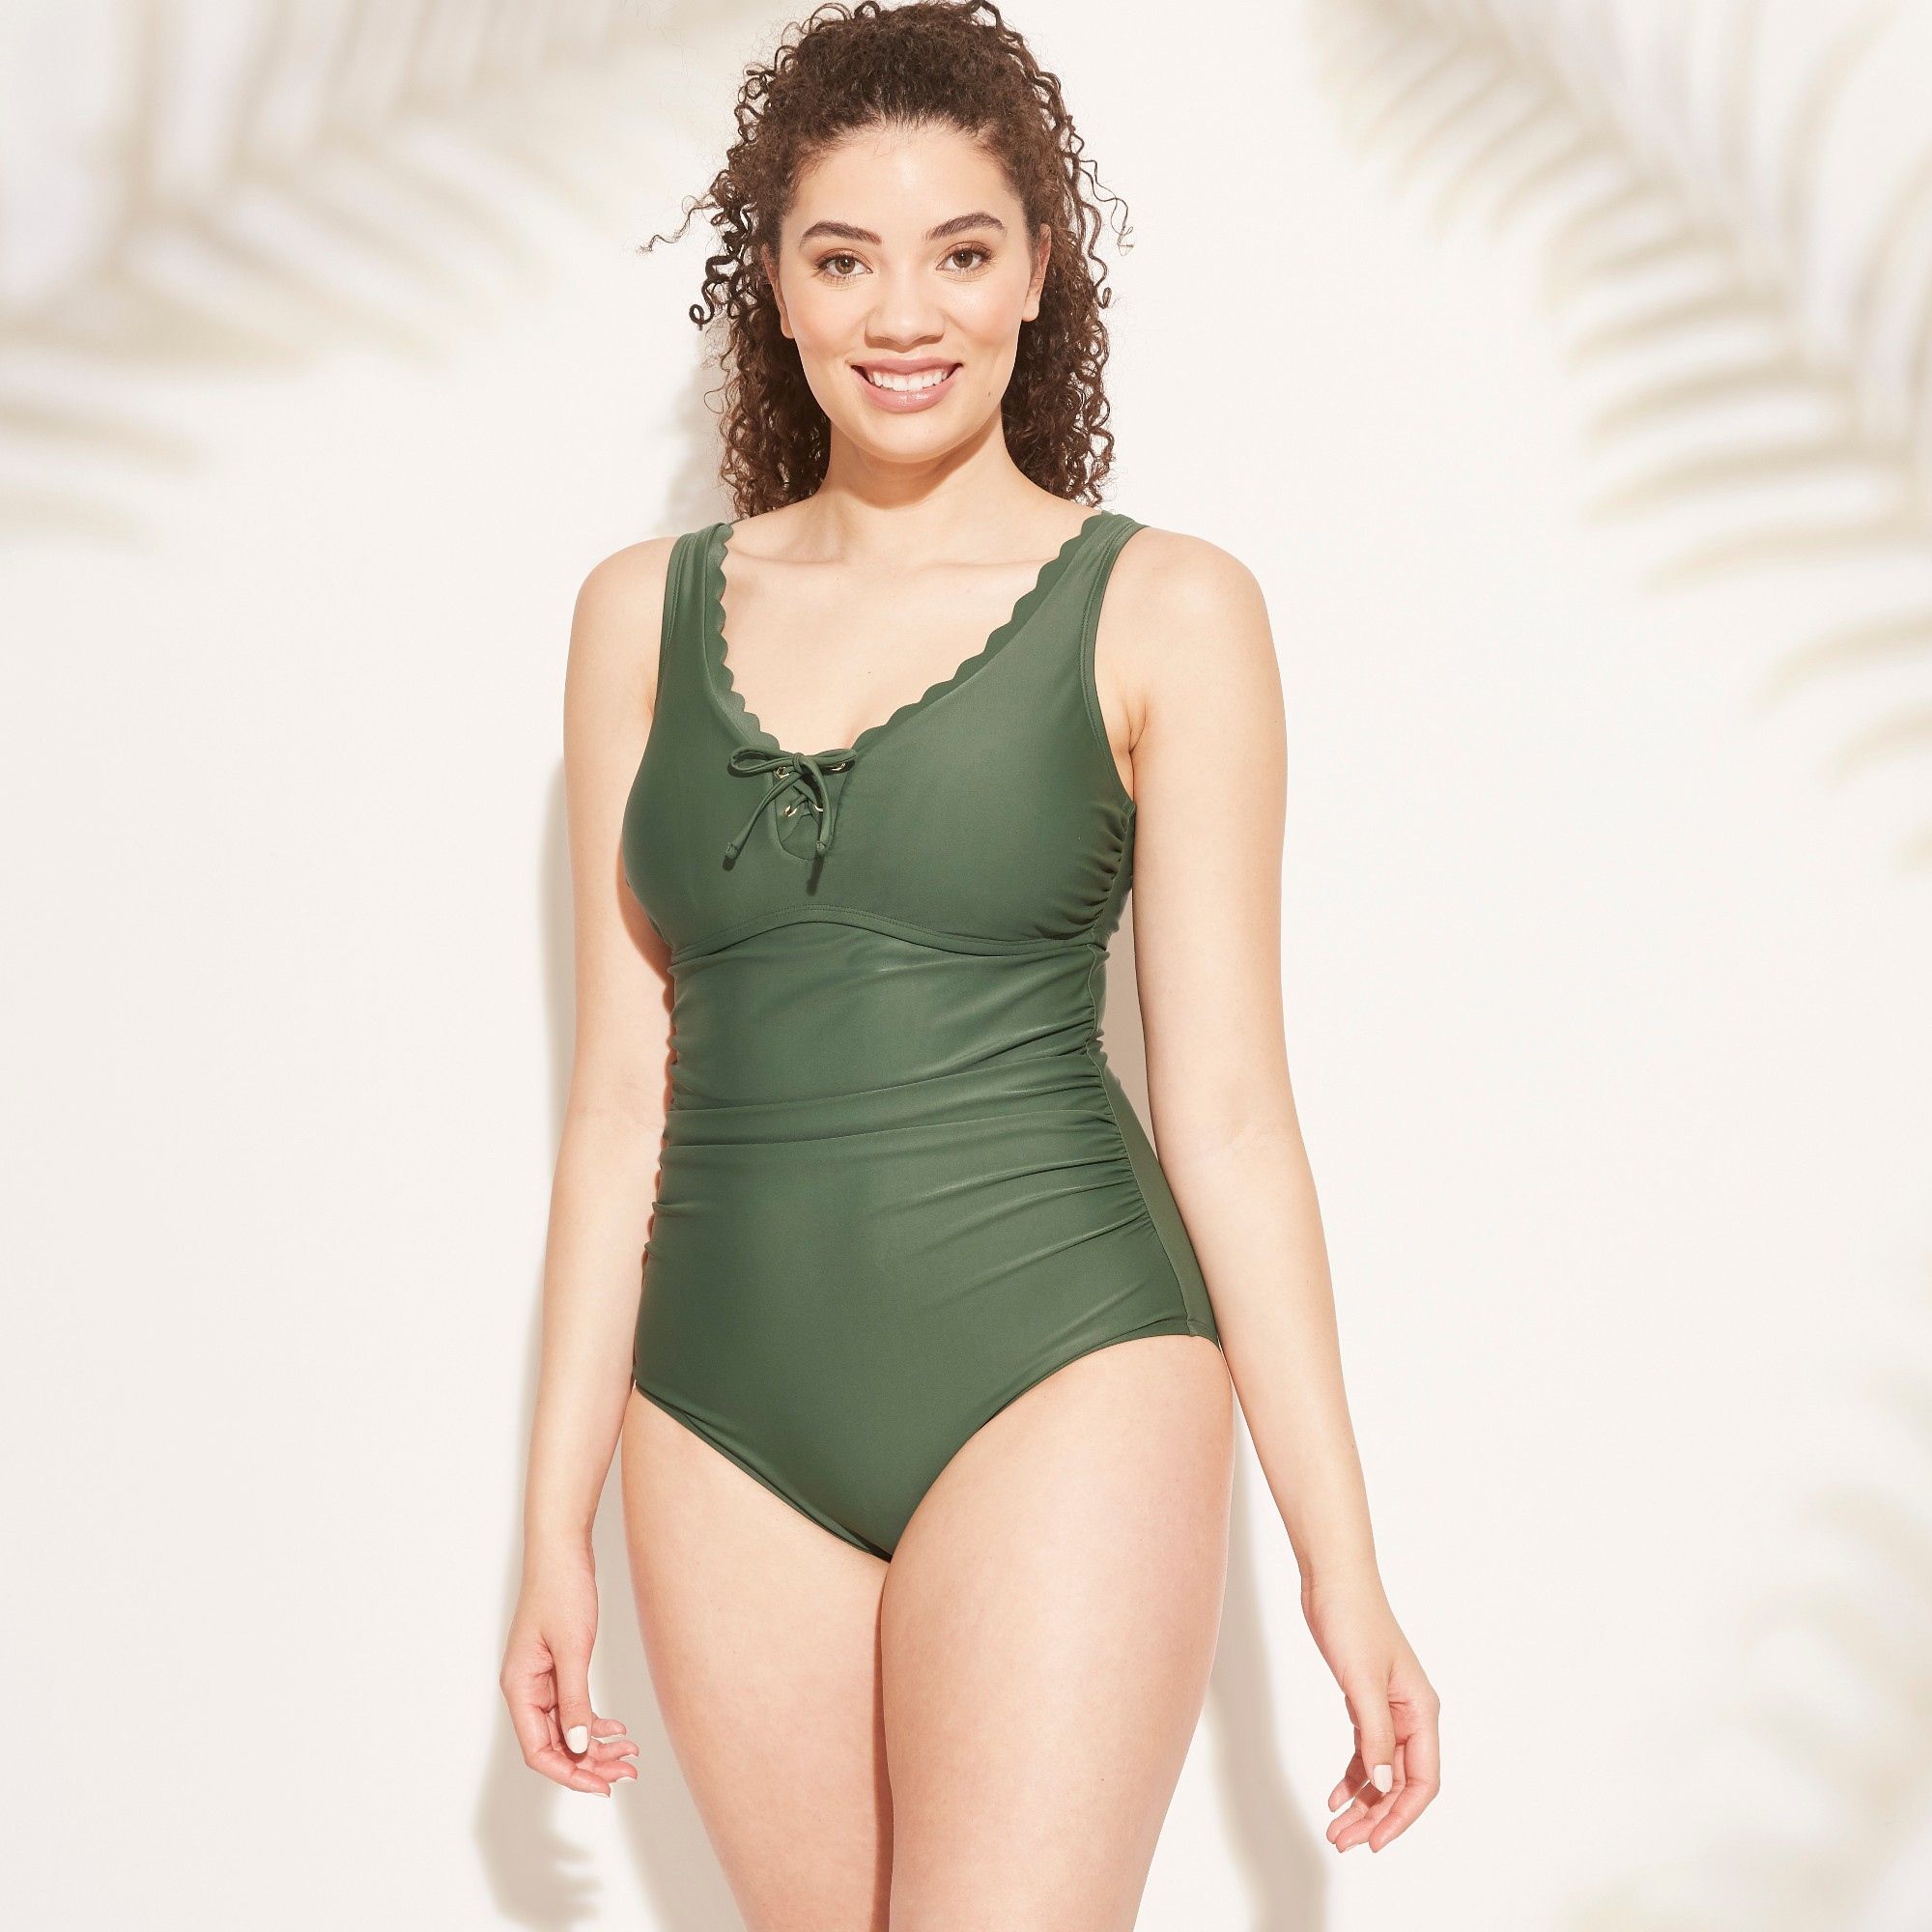 bfd6000902a Women s Lace-Up Scallop One Piece Swimsuit - Kona Sol Dark Green XL ...